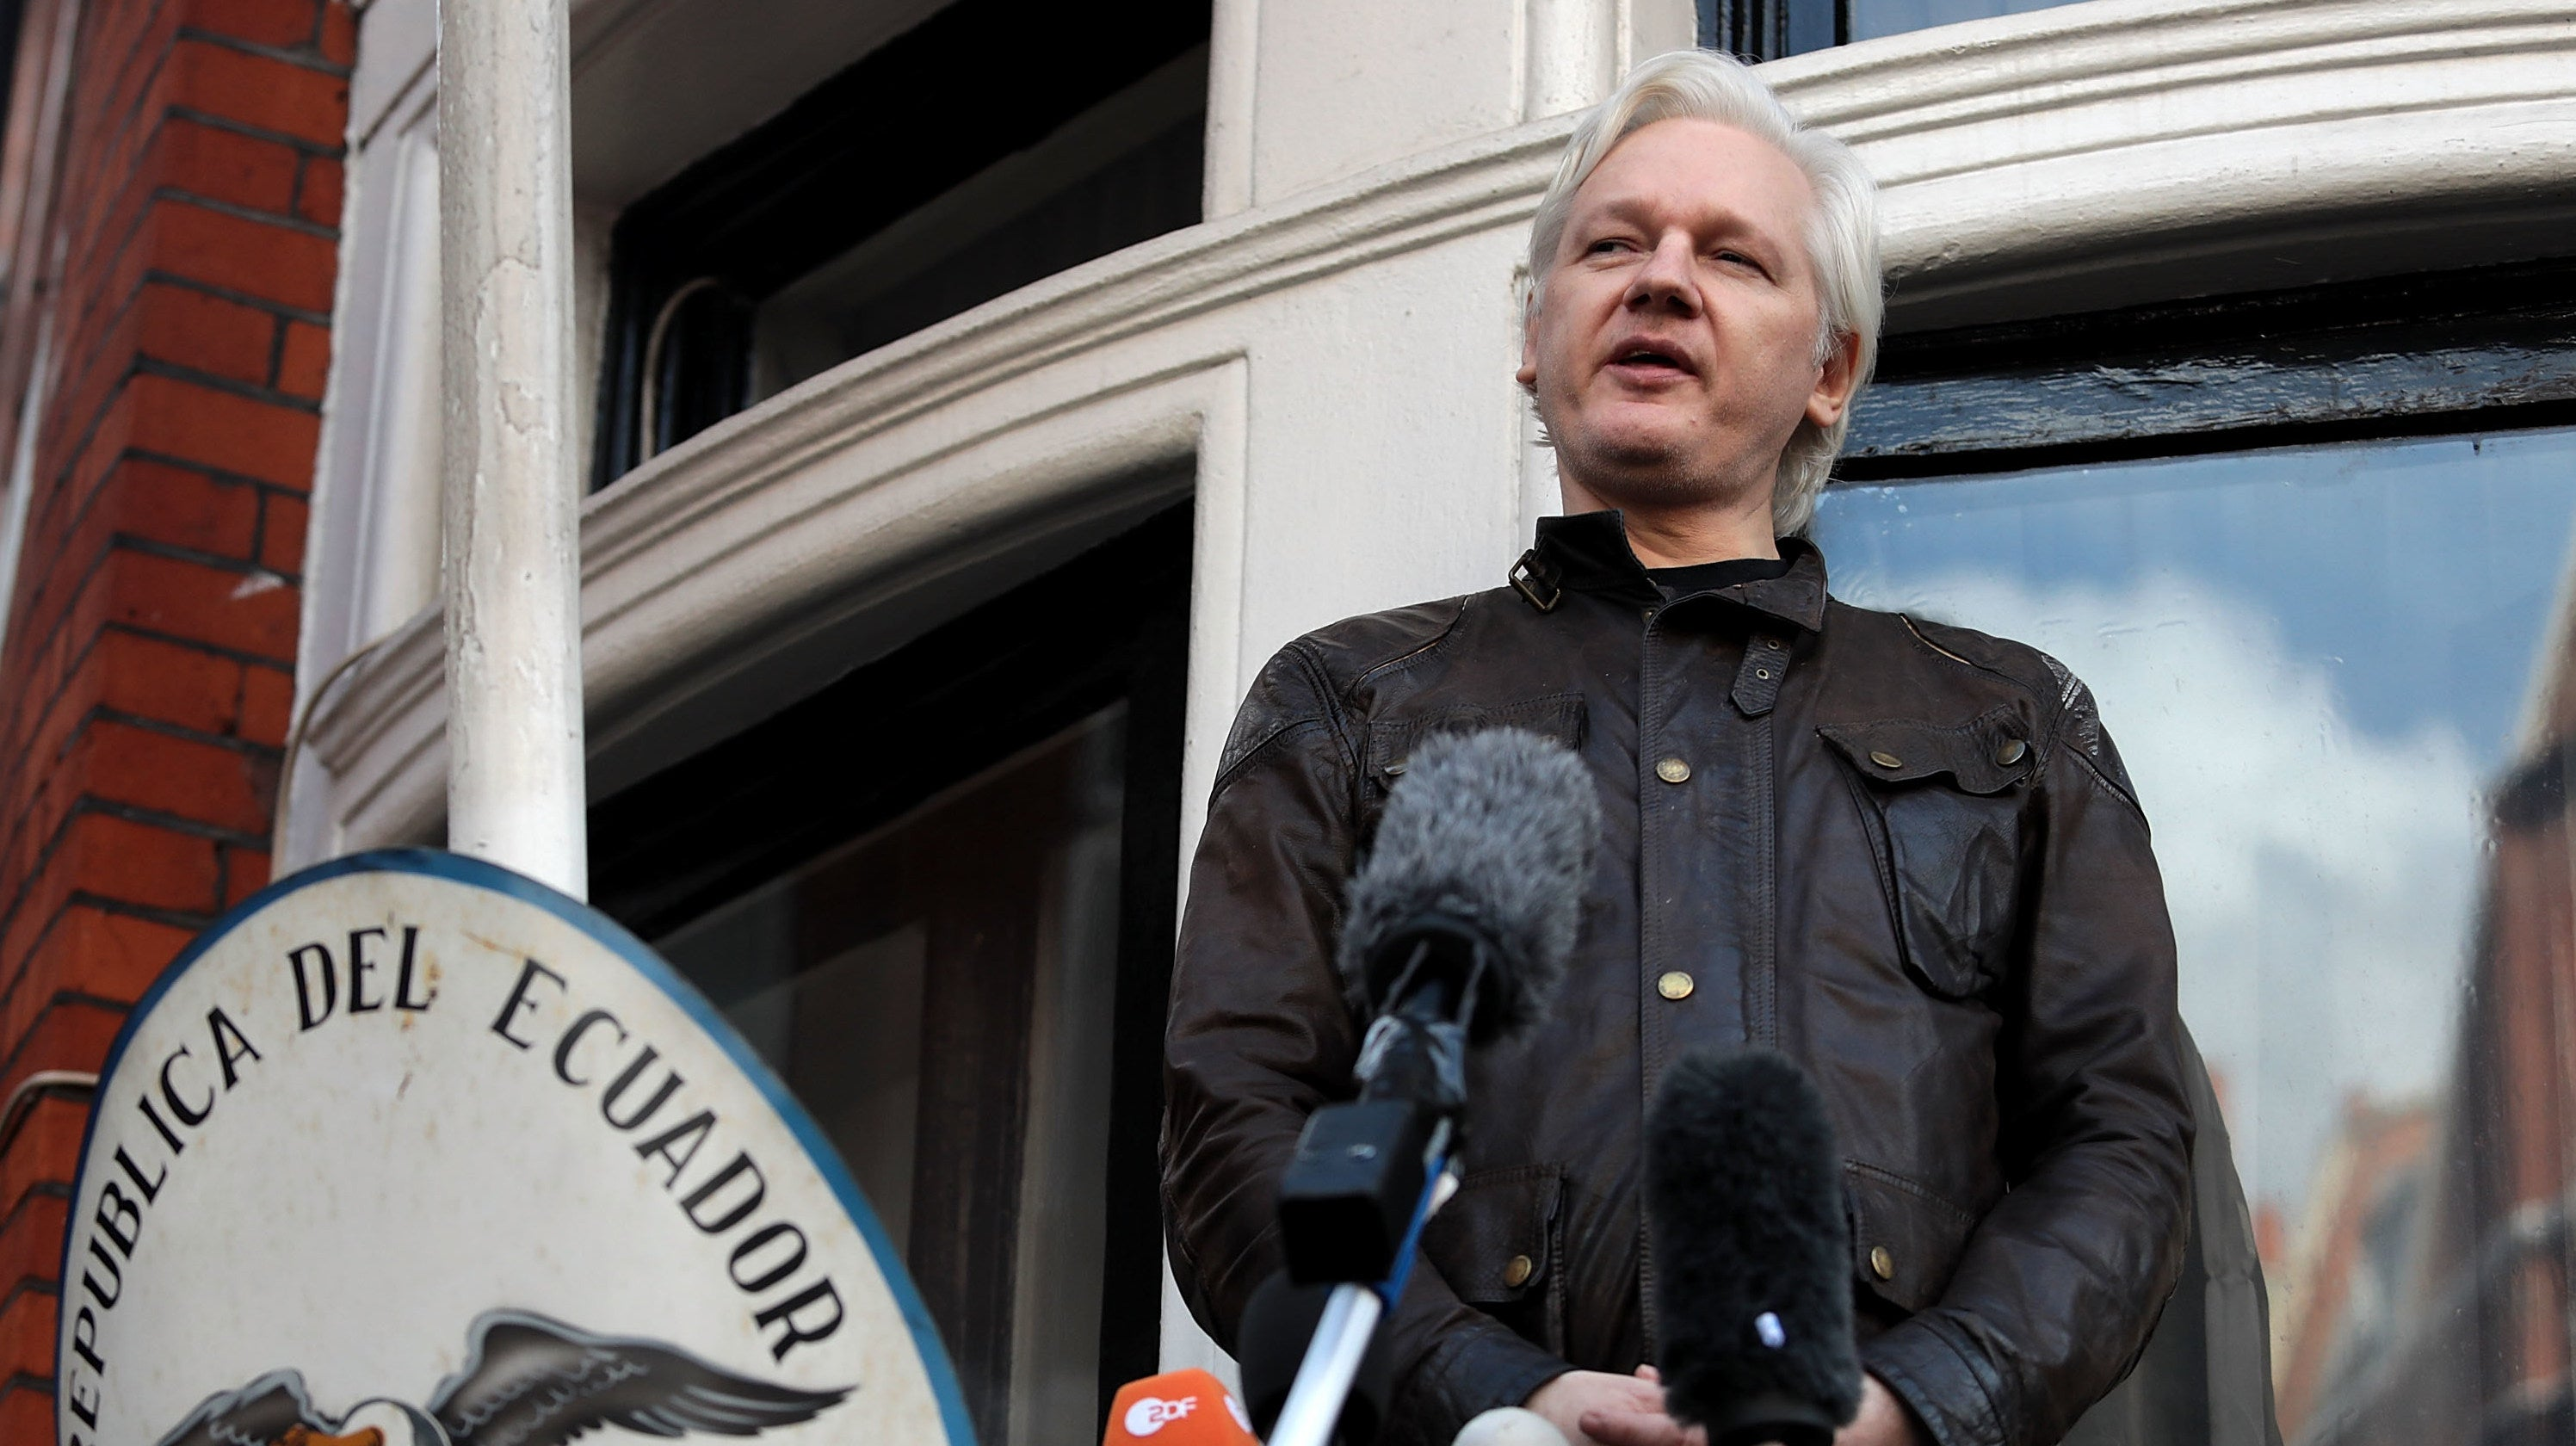 Julian Assange Lawyers To Argue Trump's New Intel Chief, Richard Grenell, Sought Shady Extradition Deal